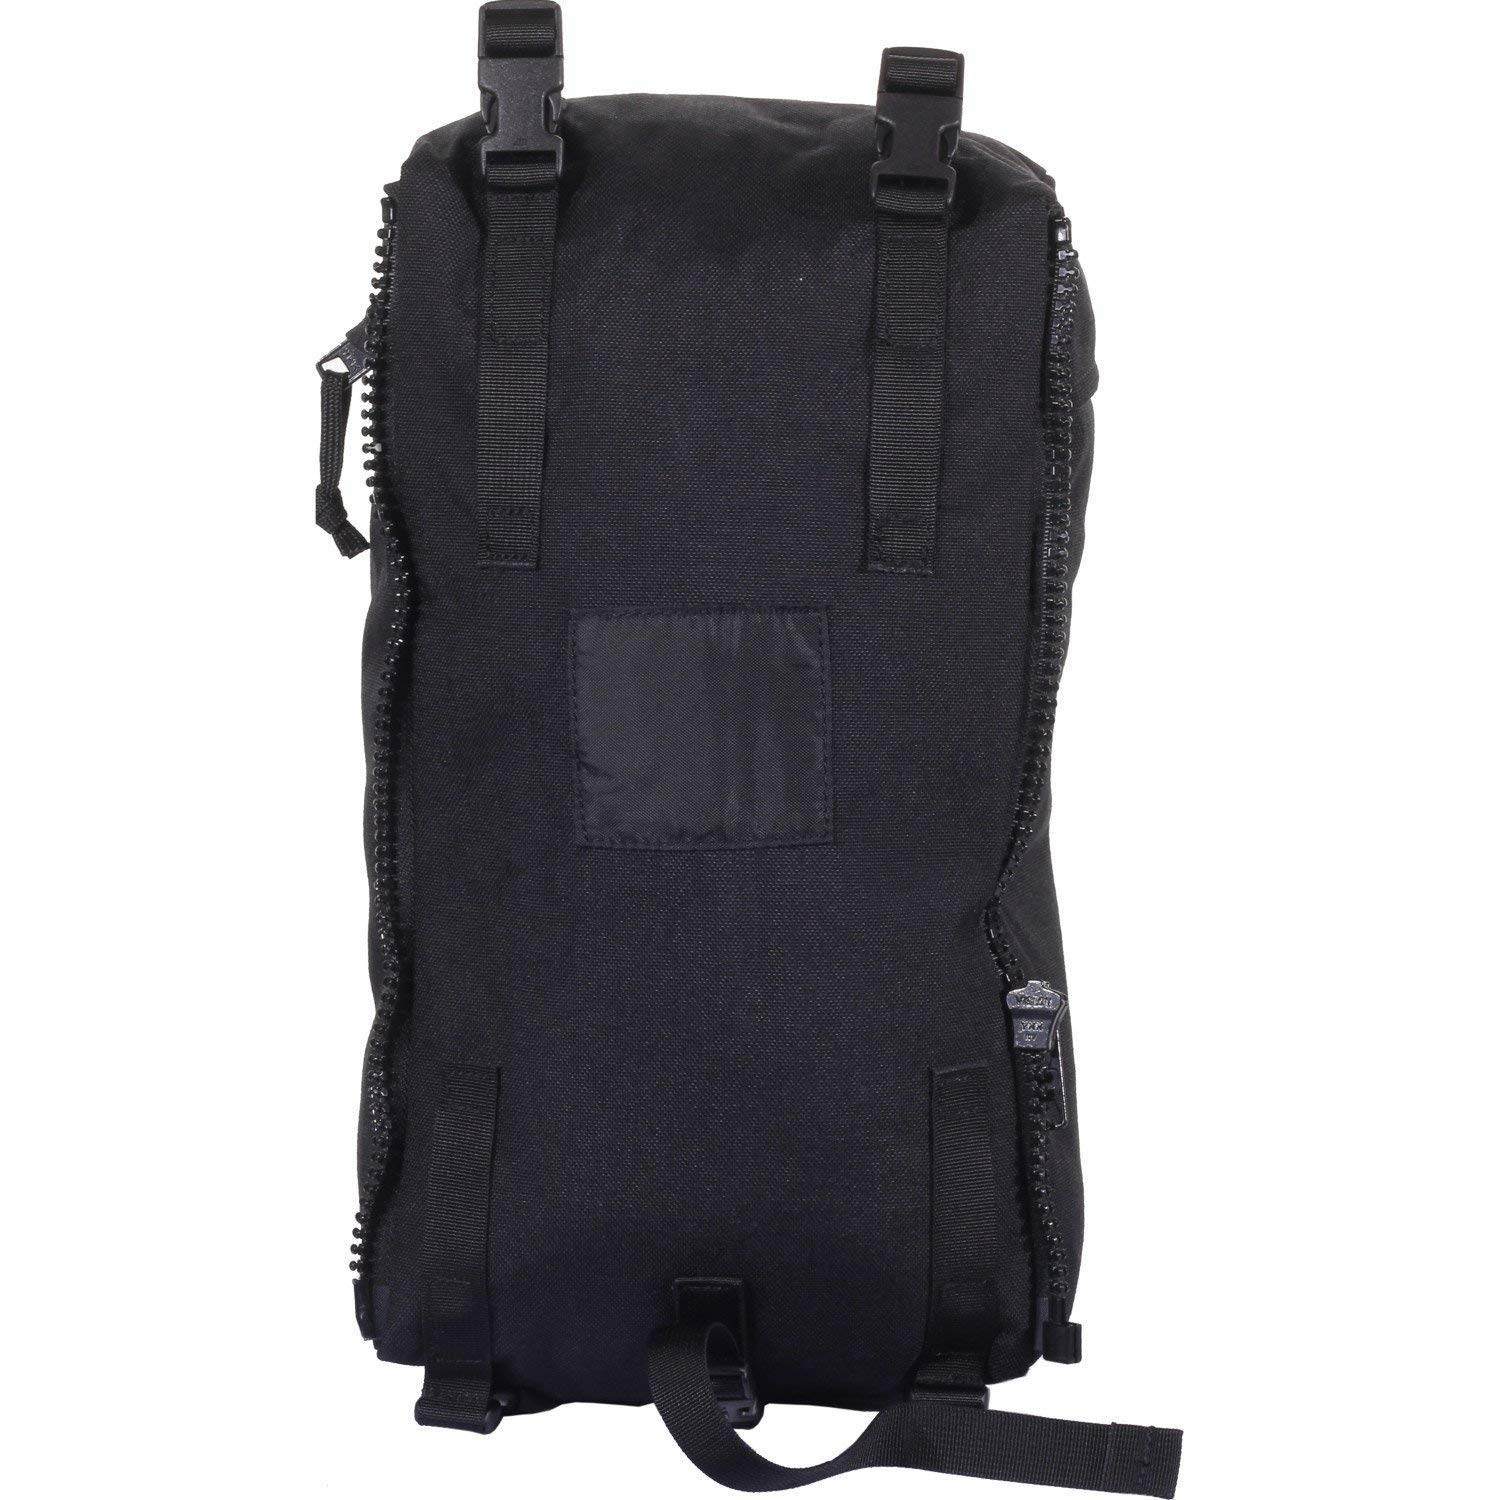 71127f39d5fb Karrimore SF Ruck Sack Sabre side pockets (pair) - Black  Amazon.co.uk   Sports   Outdoors